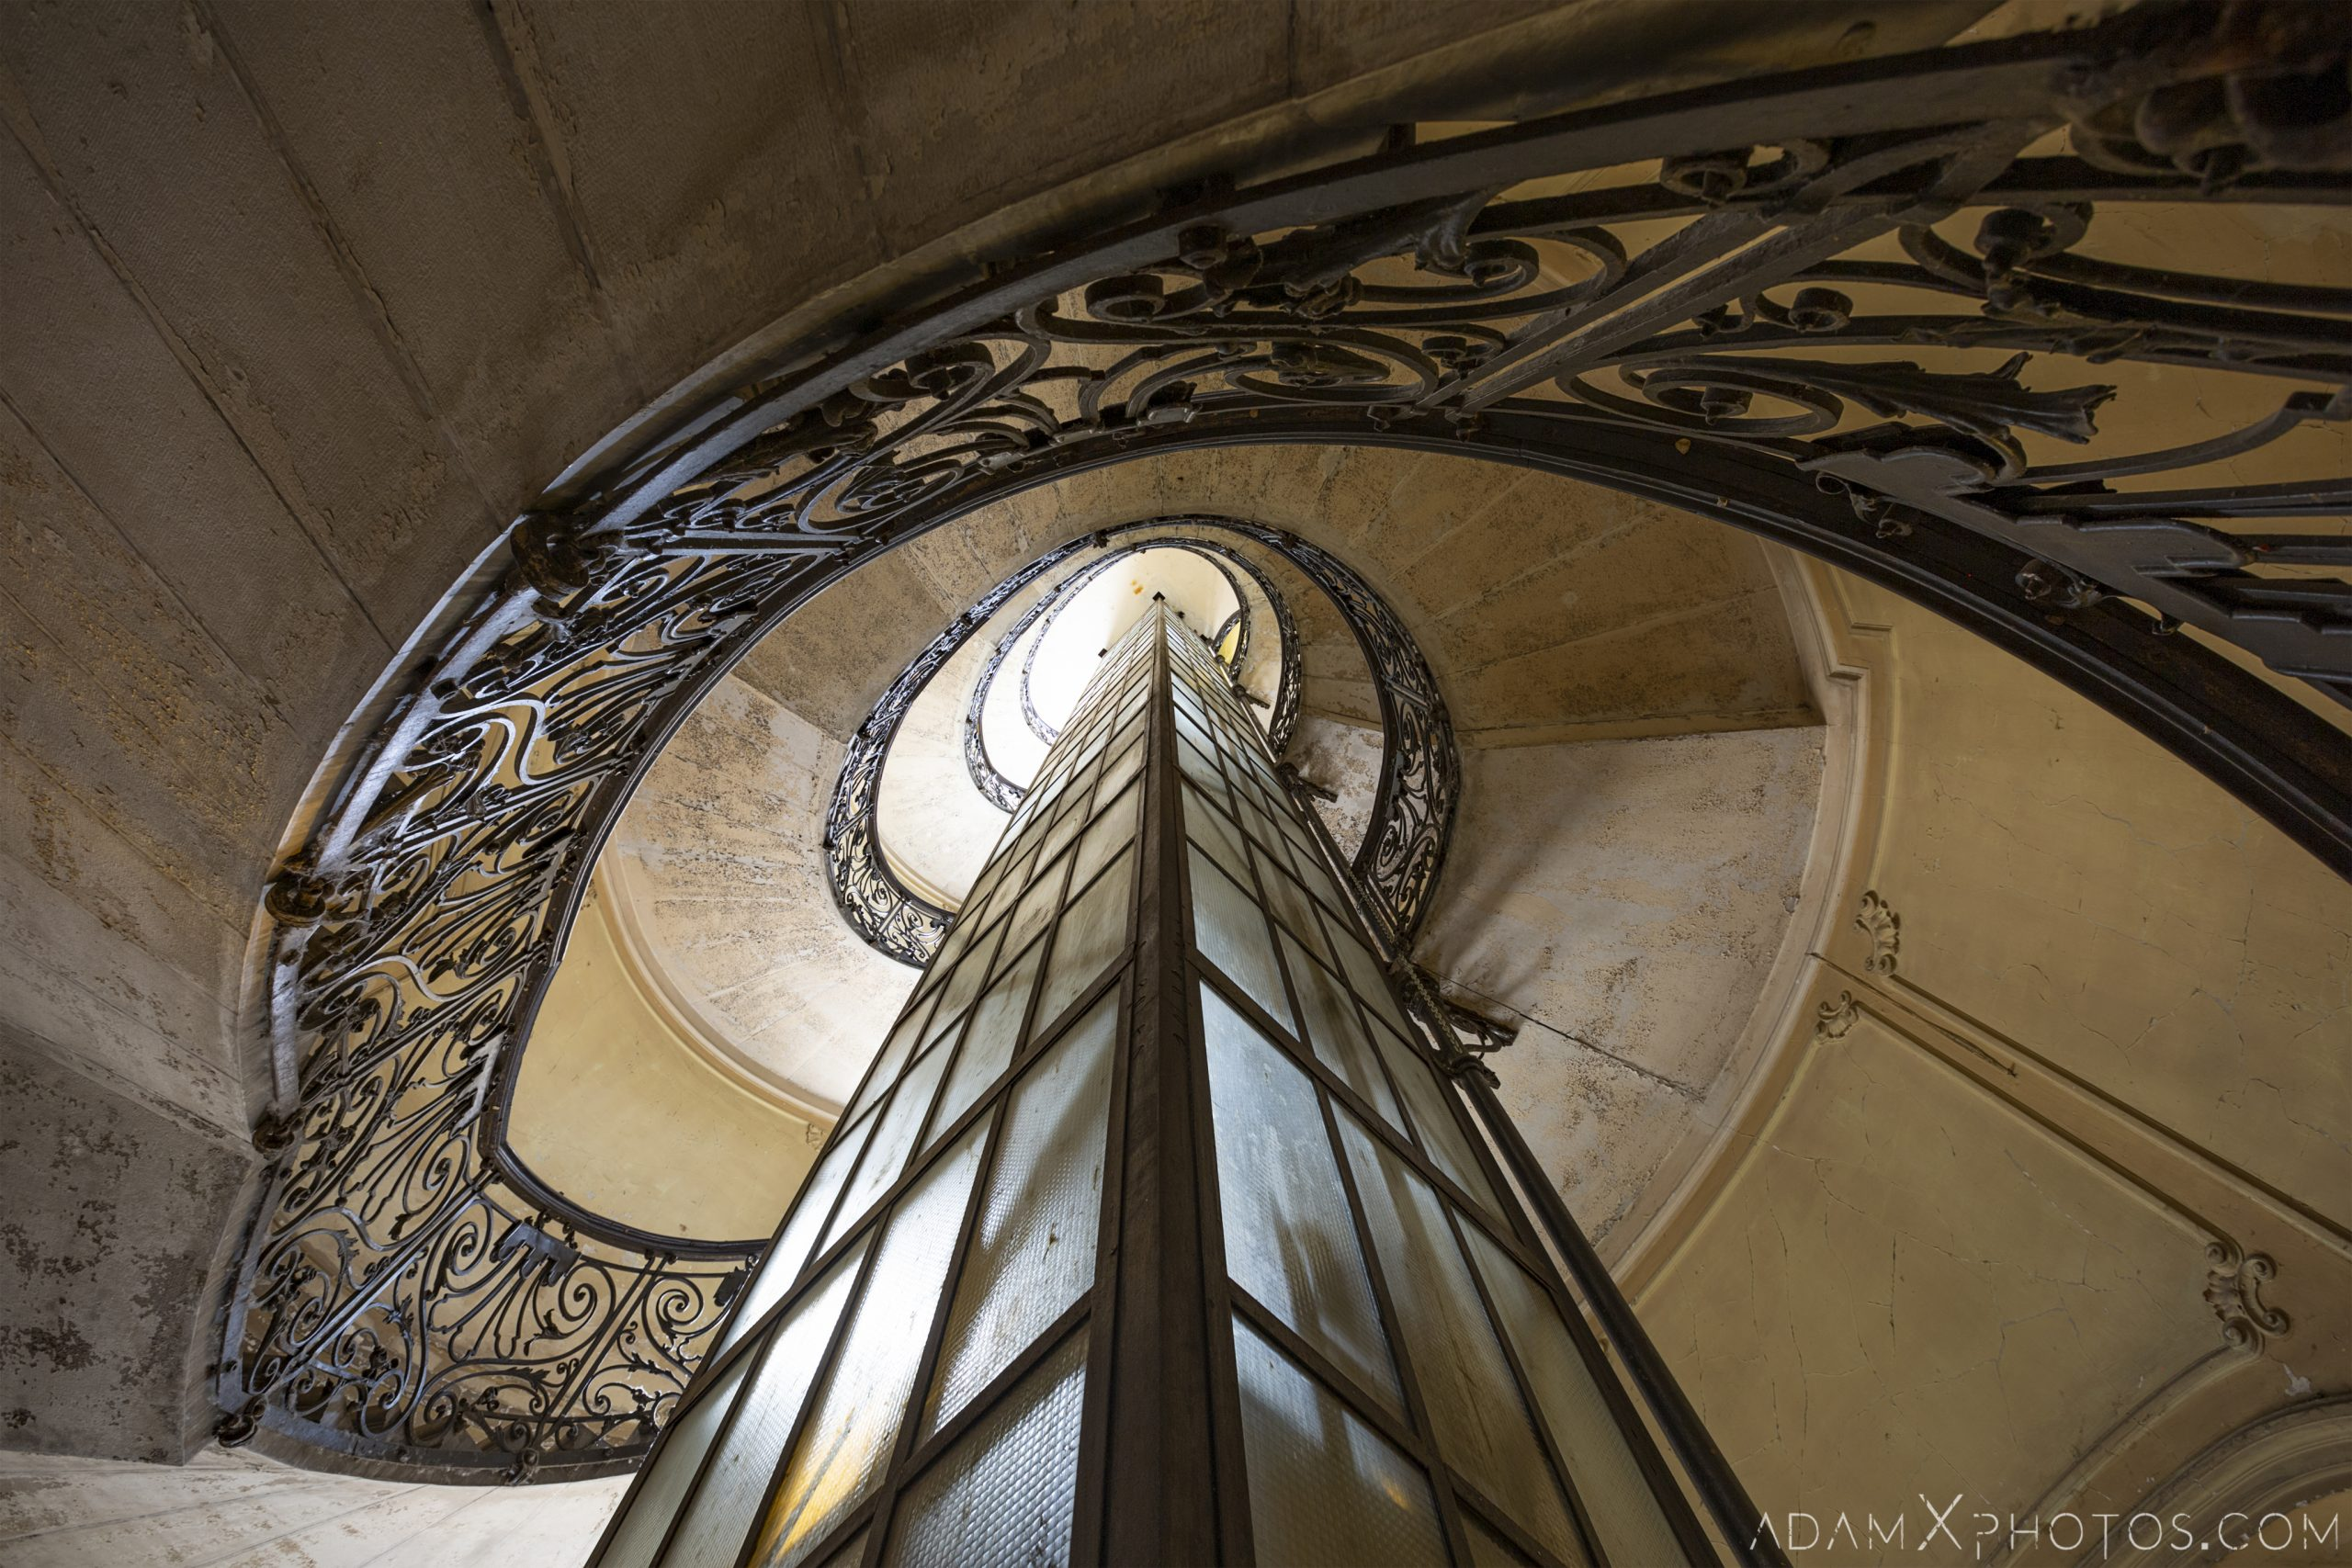 spiral staircase looking up lift Adria Palace Budapest Hungary Adam X Urbex Urban Exploration Access 2018 Blade Runner 2049 Abandoned decay ruins lost forgotten derelict location creepy haunting eerie security ornate grand neo baroque